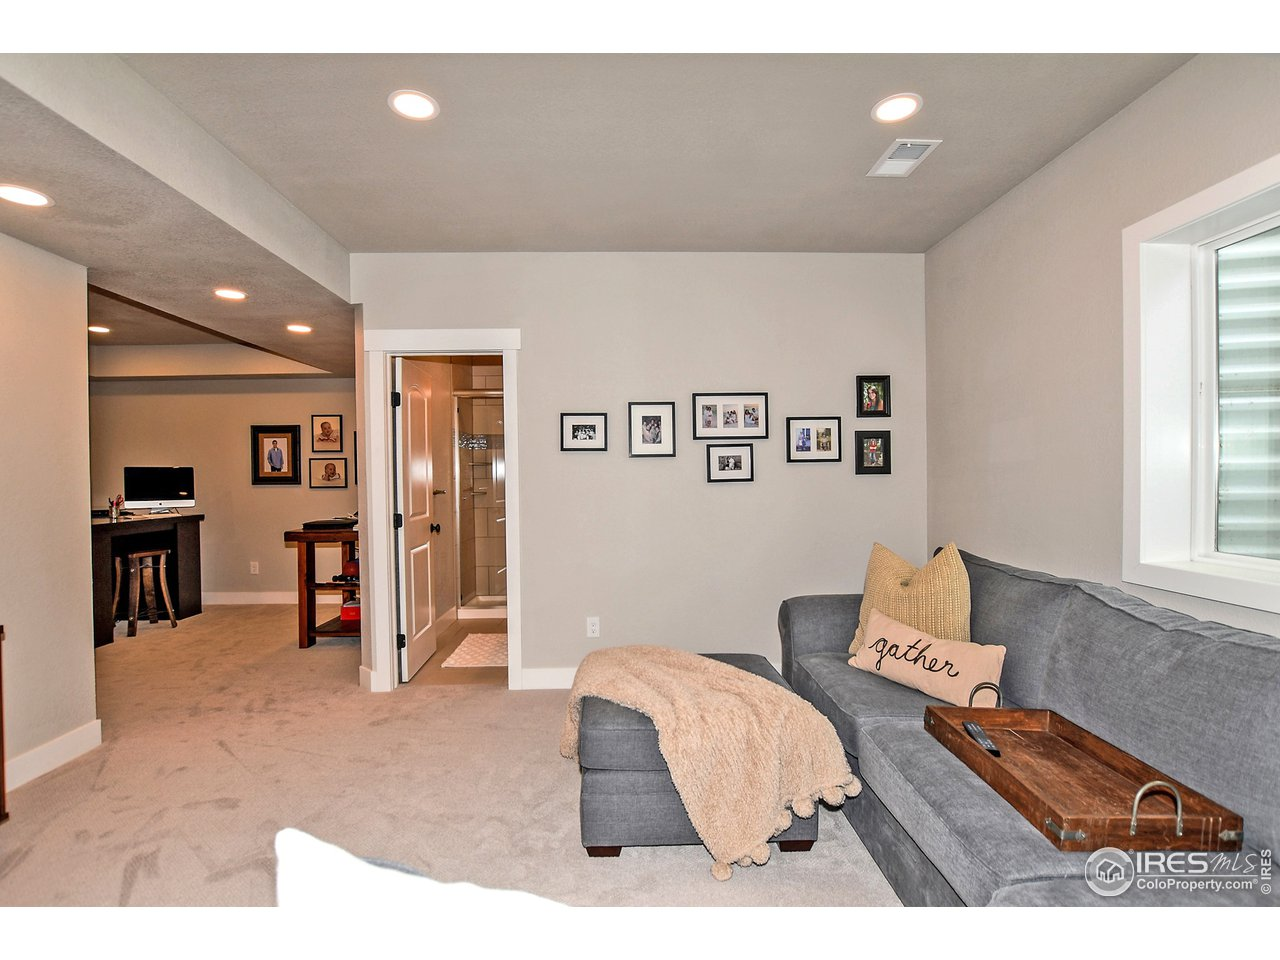 Fully encased windows, loads of lights and 9 ft. ceilings make this basement space feel grand